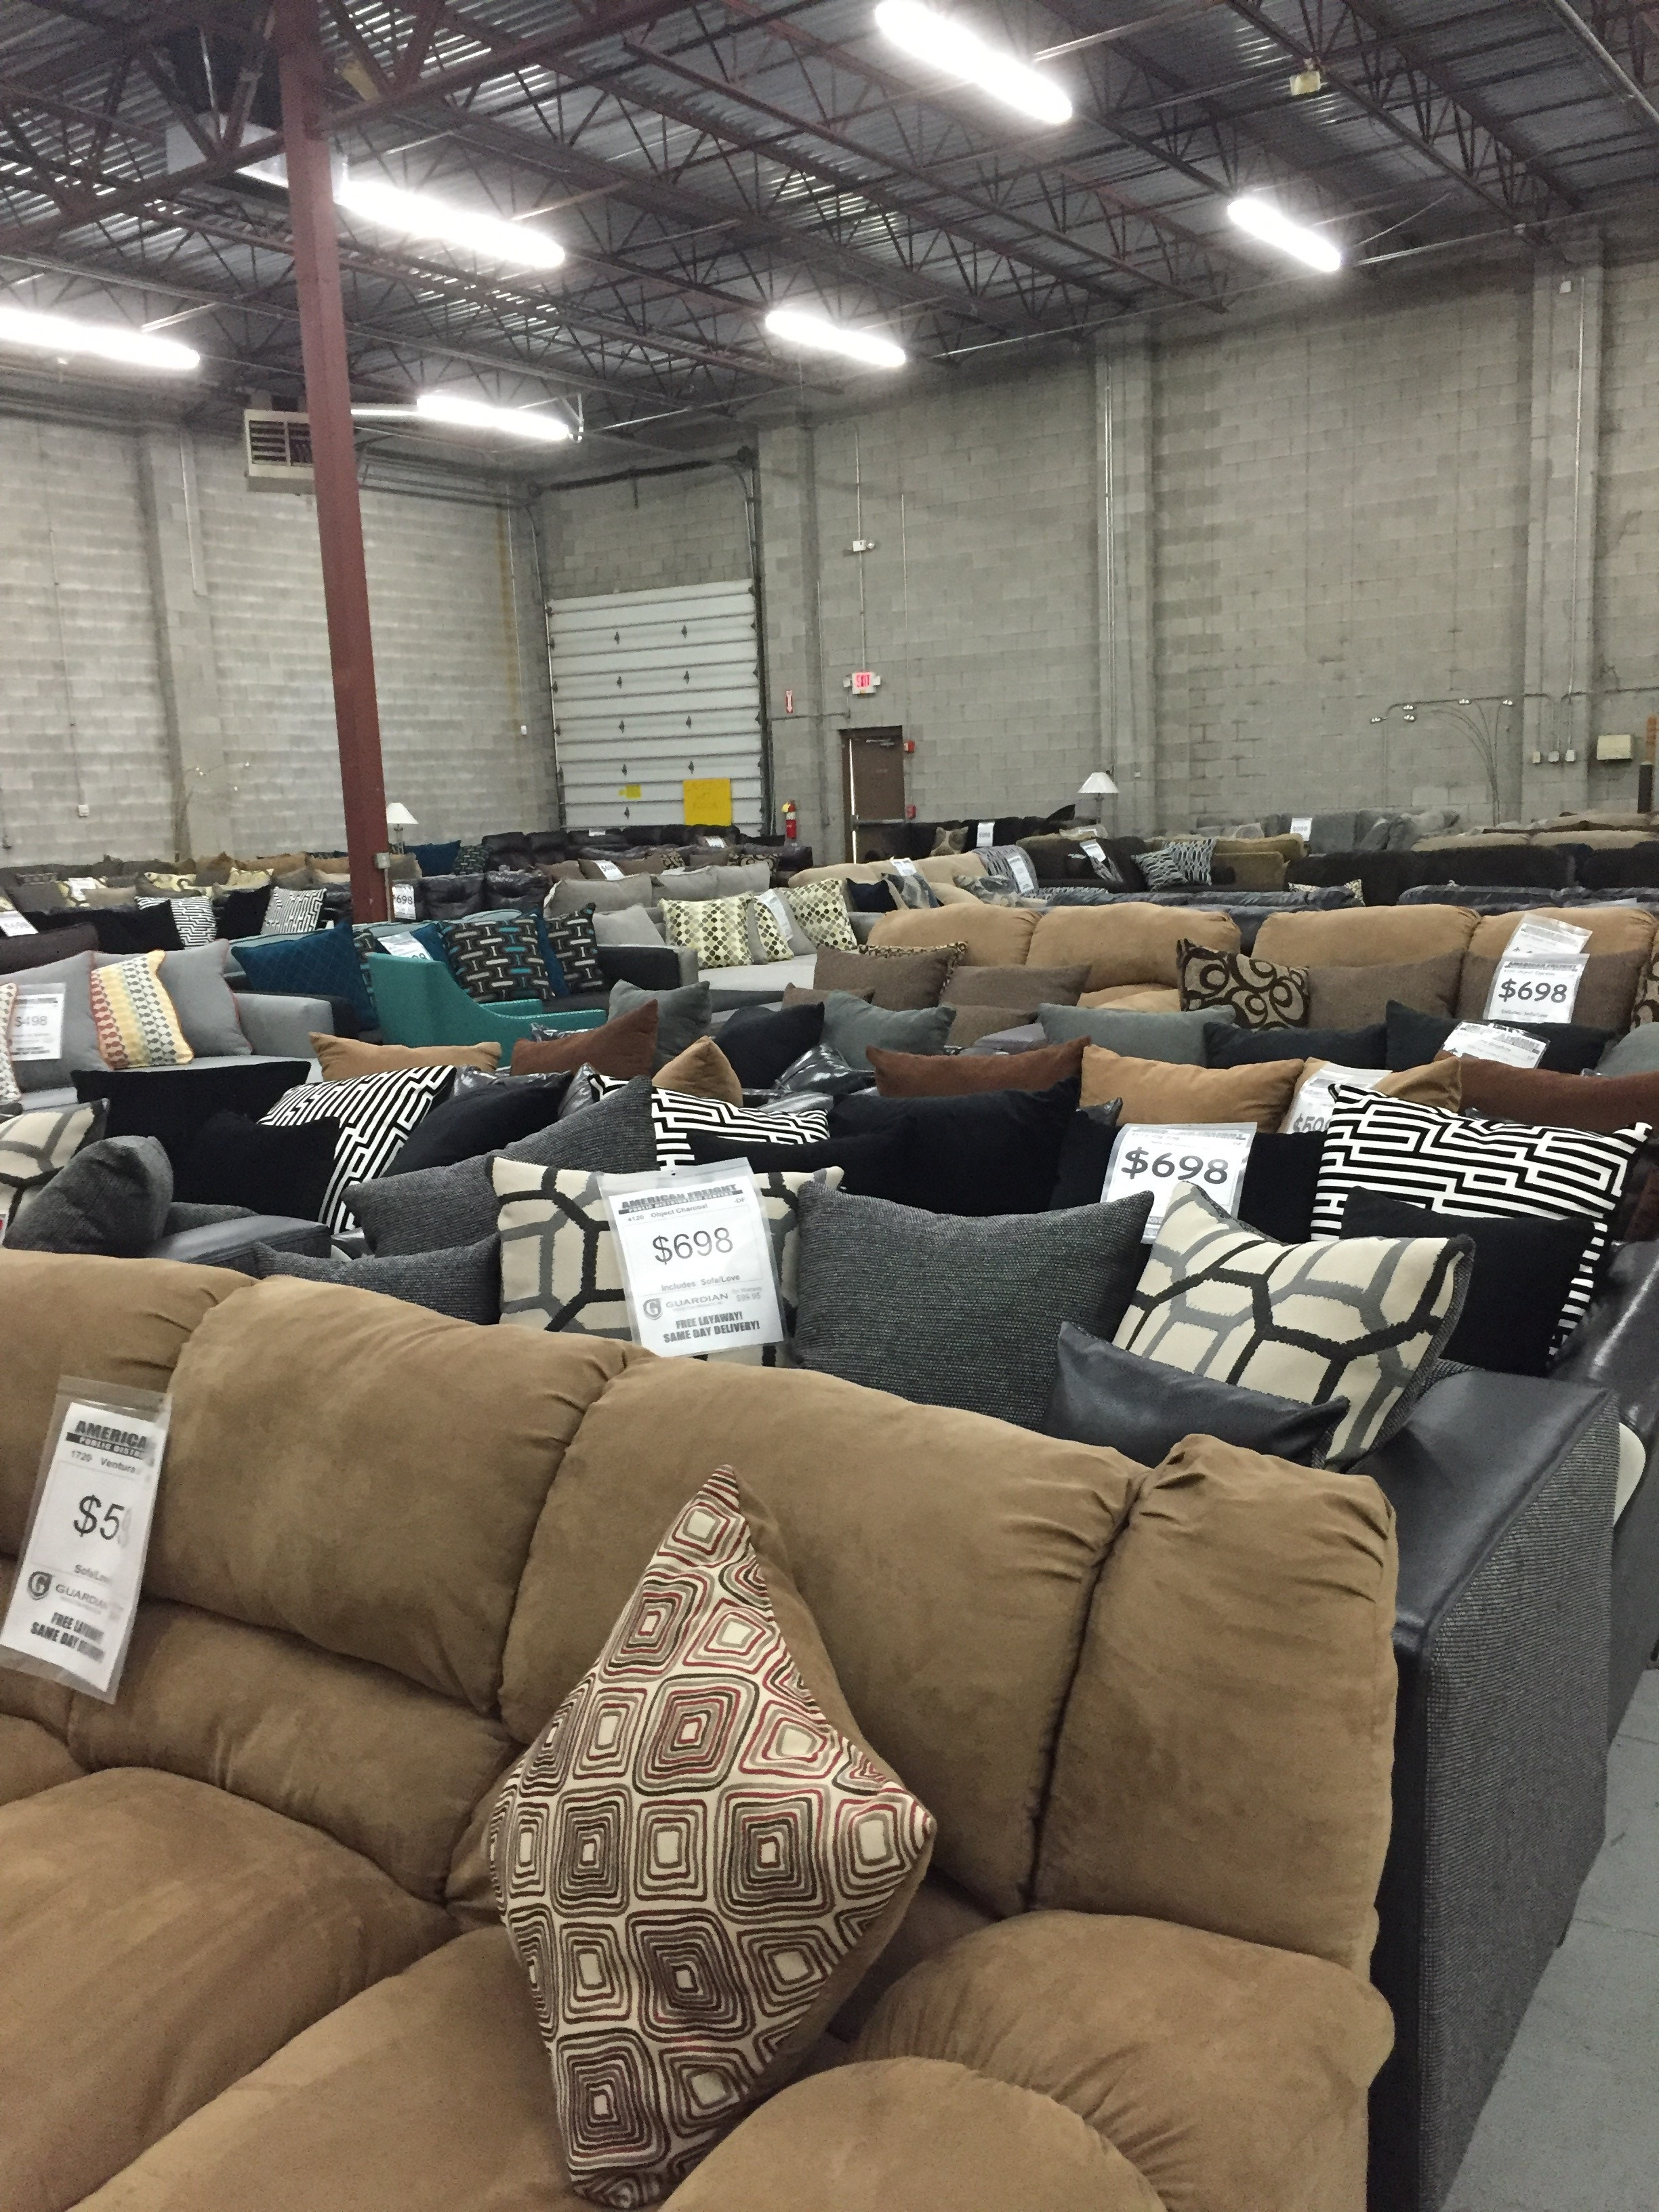 American freight furniture and mattress columbus ohio oh for American freight furniture and mattress massillon oh